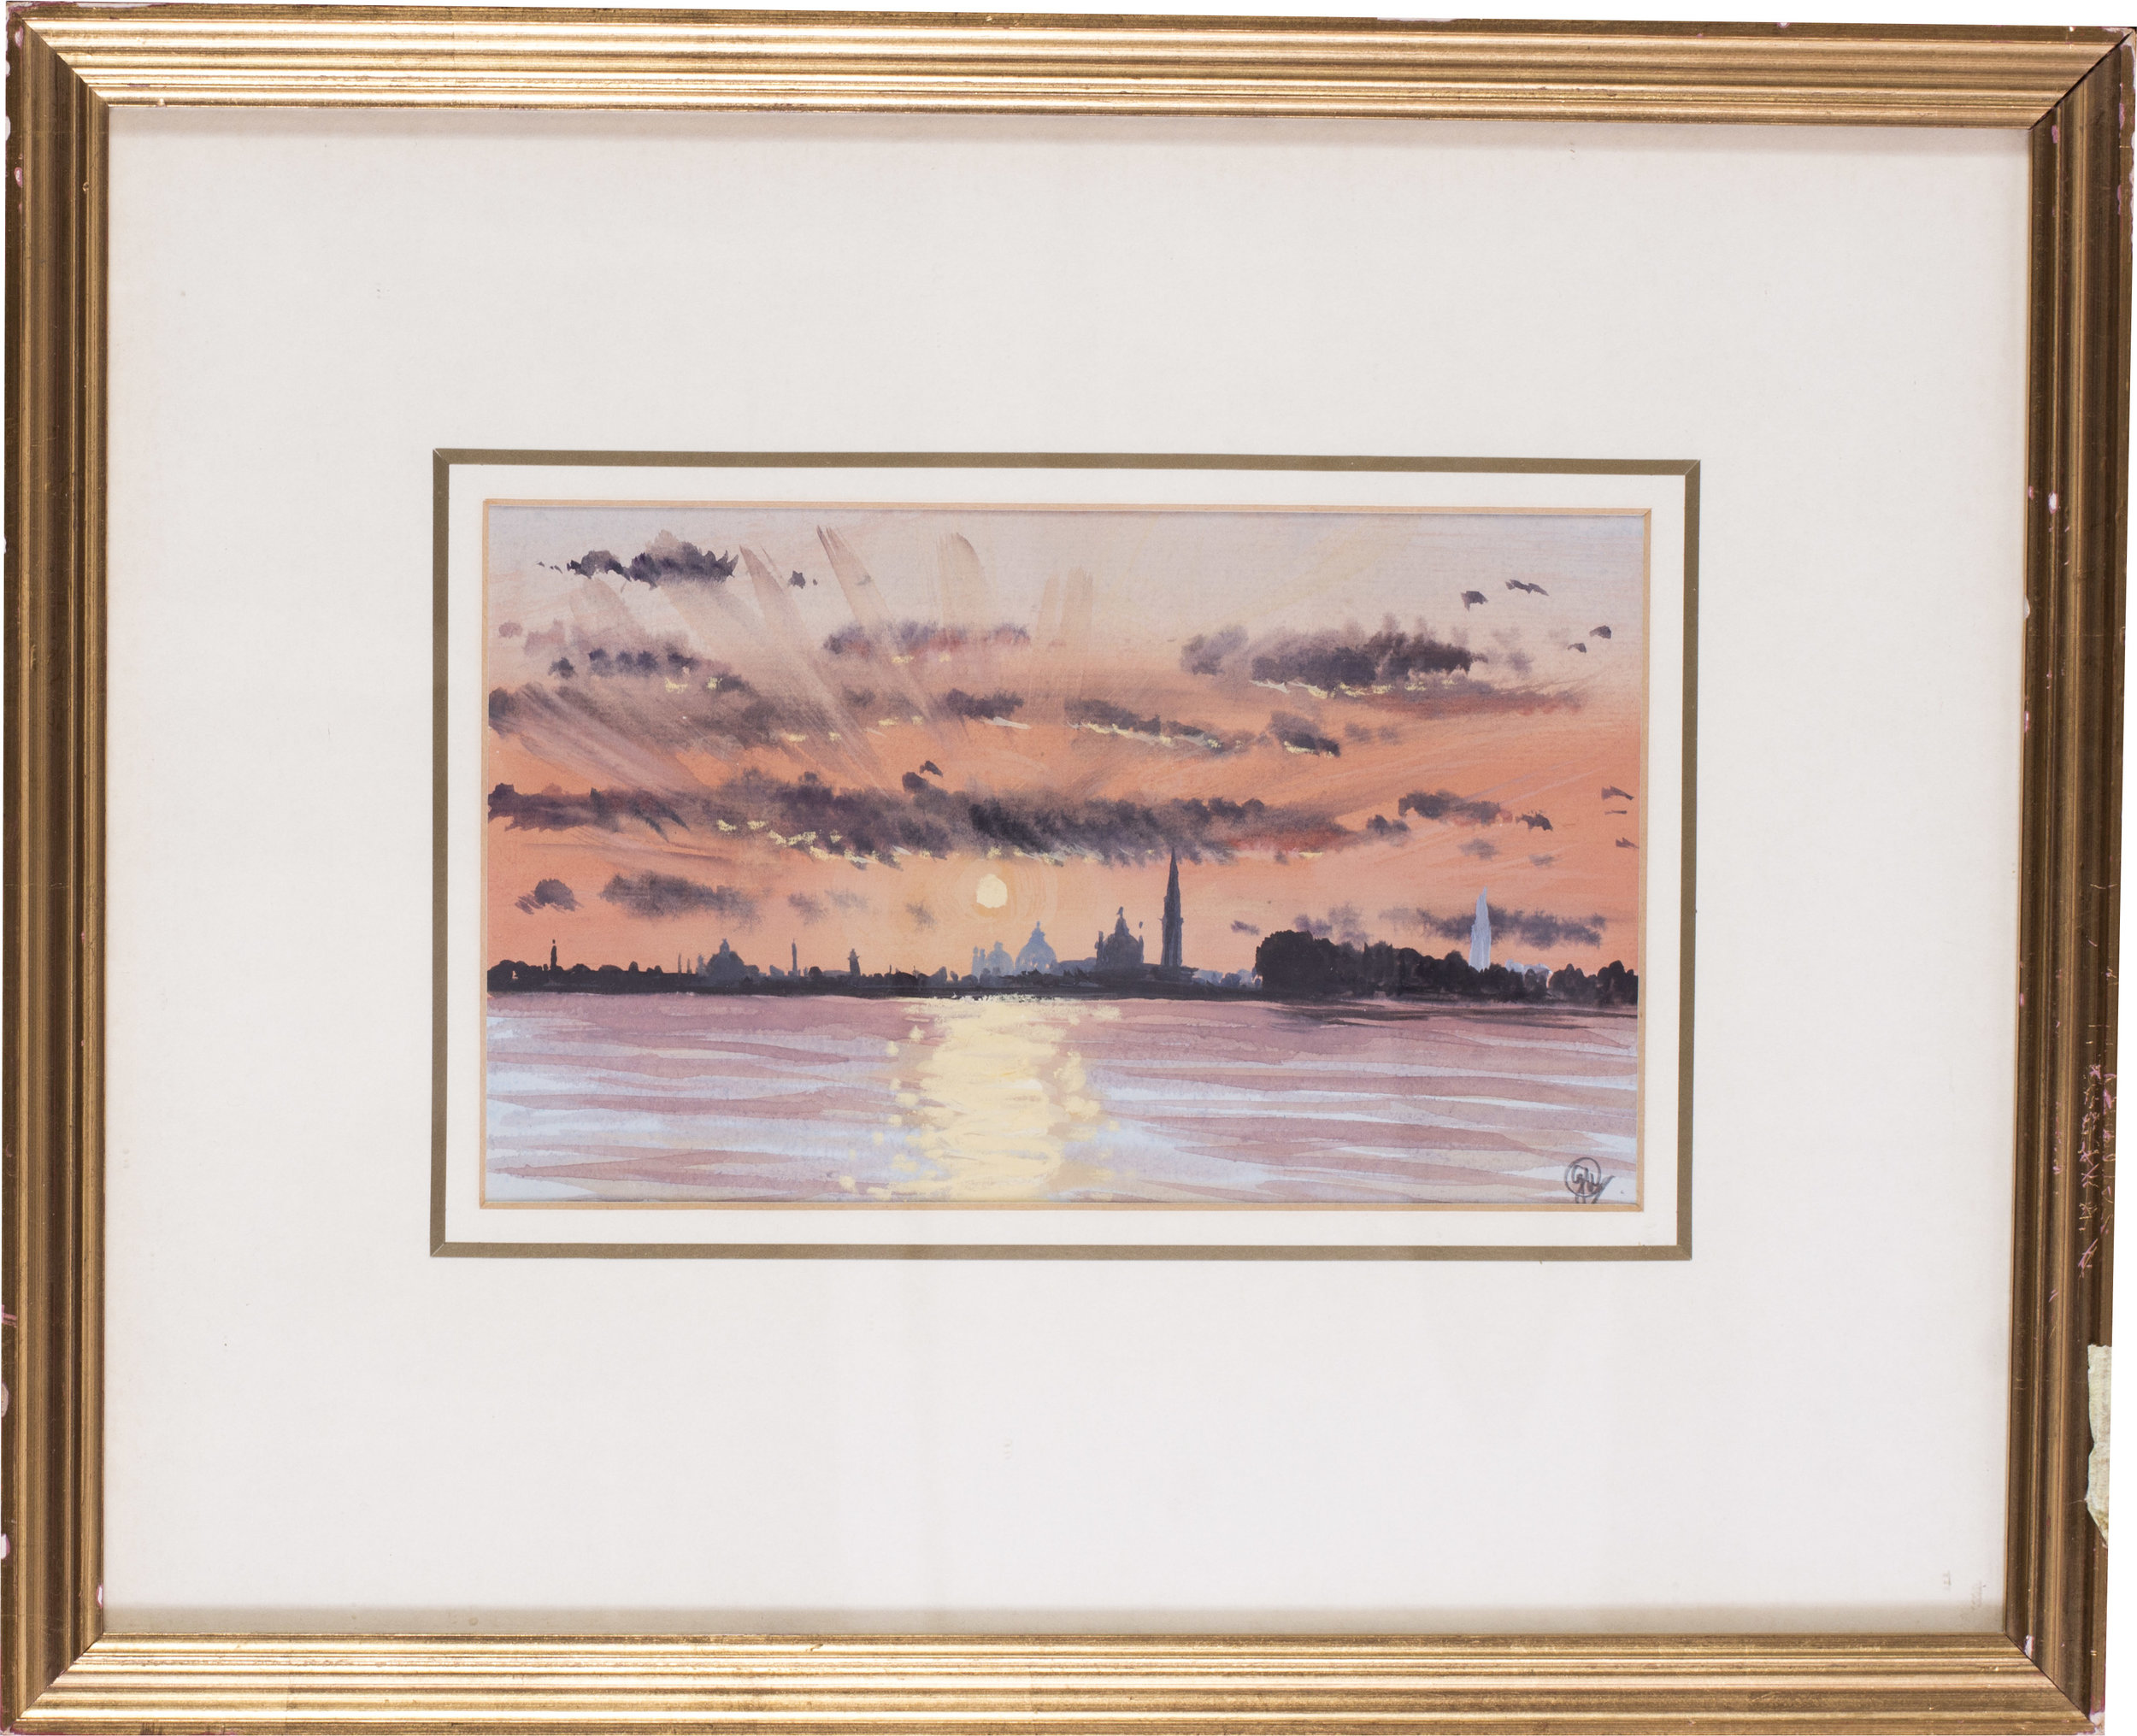 Sunset, Venice from the Lido , 1986   Acrylic and watercolour on paper   Signed with monogrammed (lower right)   6 x 10 in. (15.3 x 25.4 cm.)   Provenance: The Catto Gallery, London   Price: £400